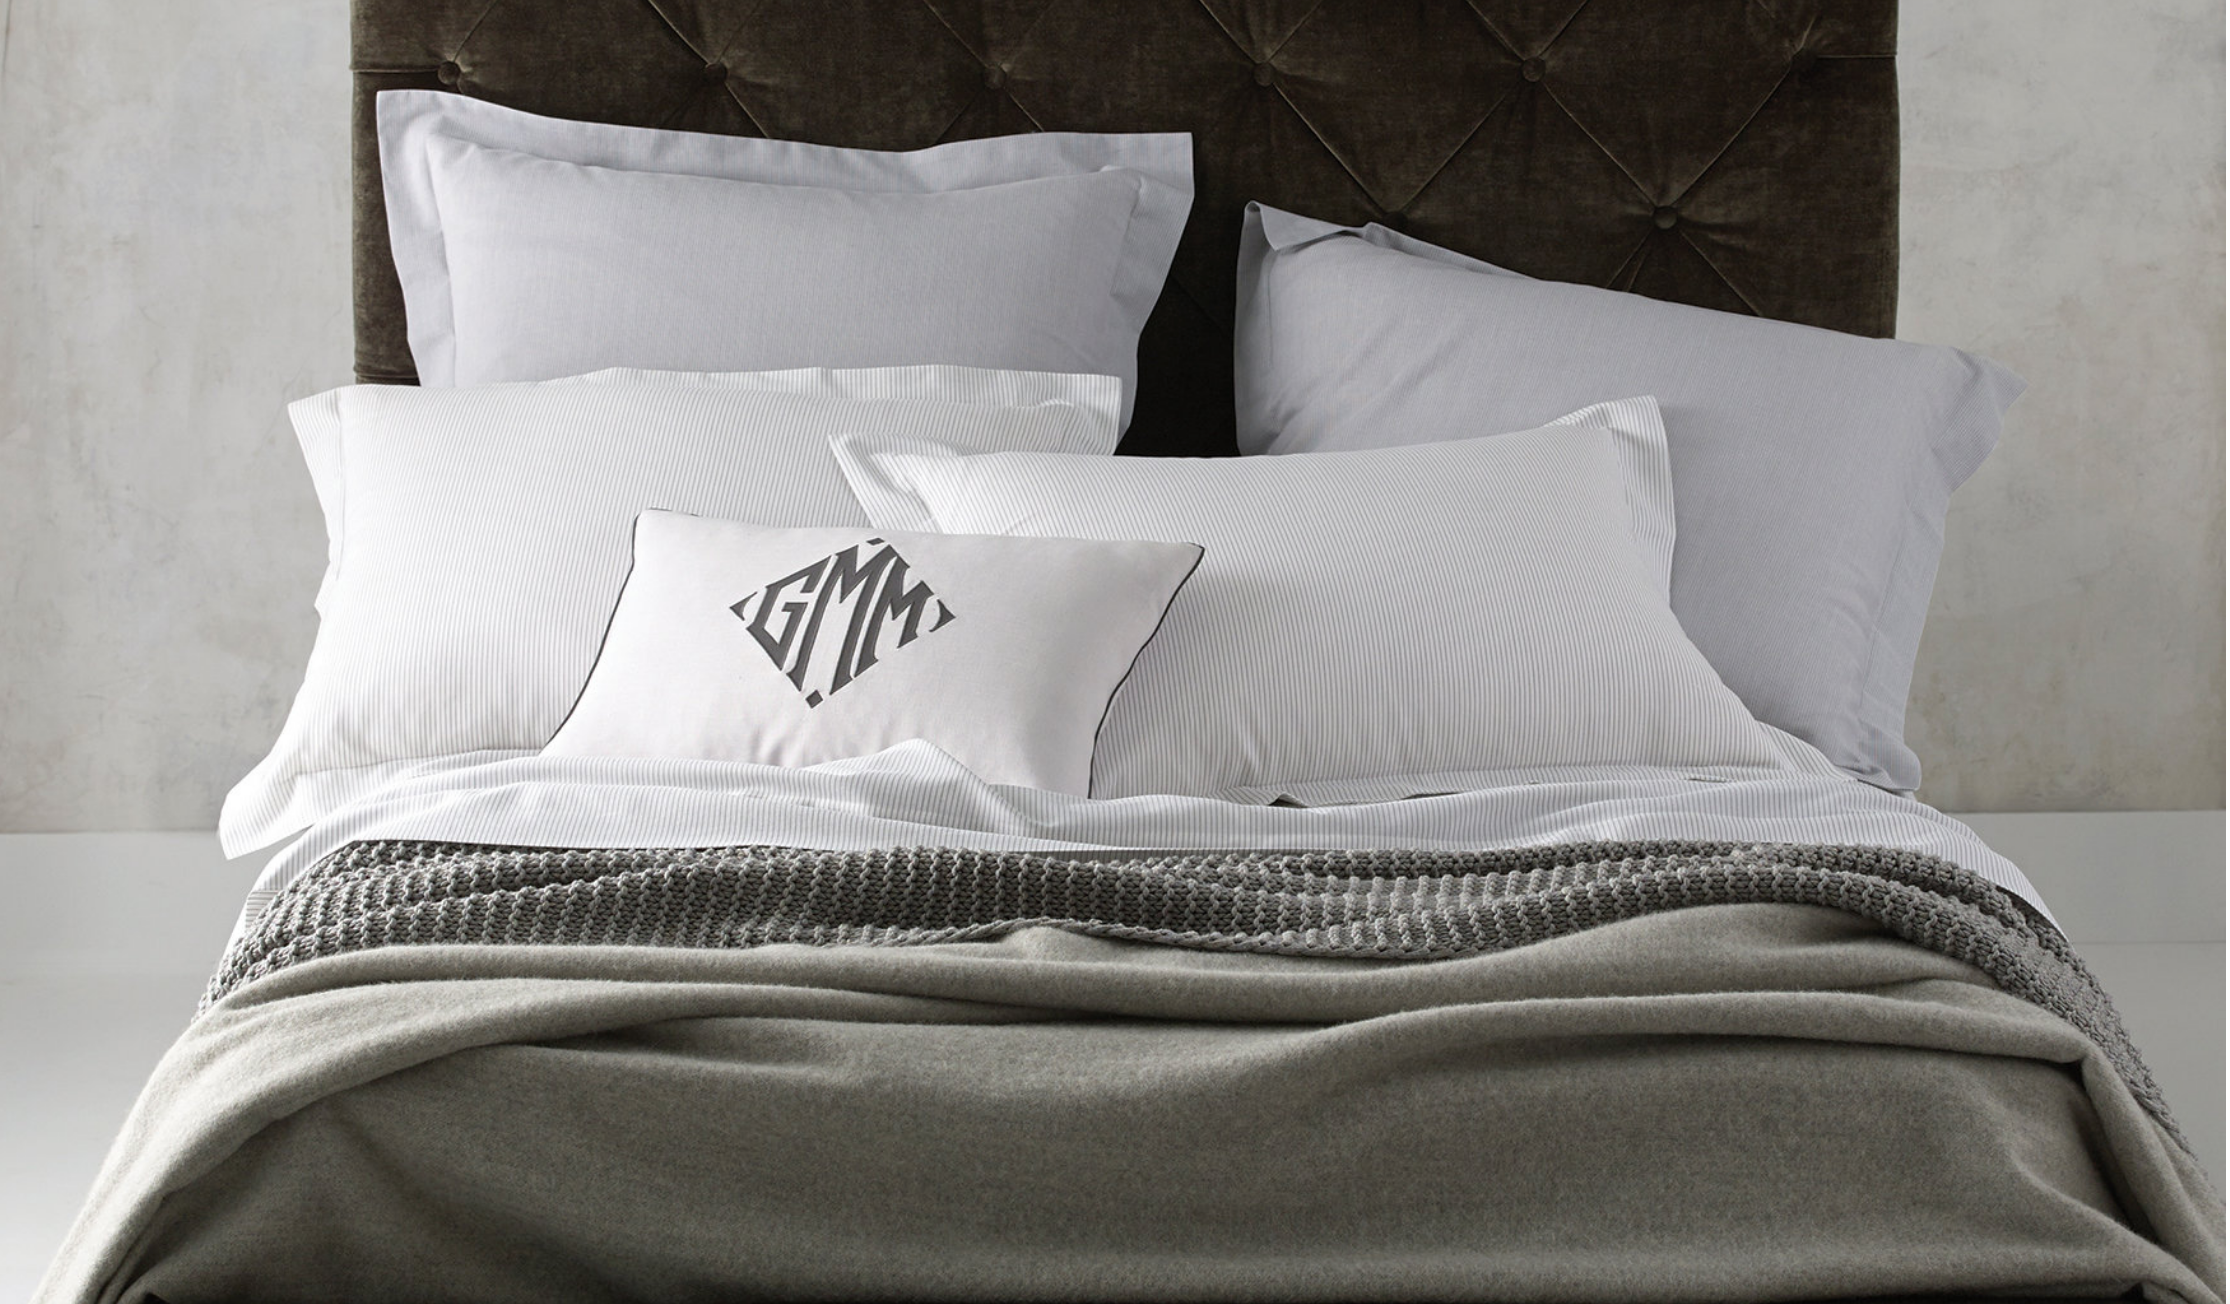 Grey and White Monogrammed Bedding by Matouk, available at A. HOME Summit, NJ